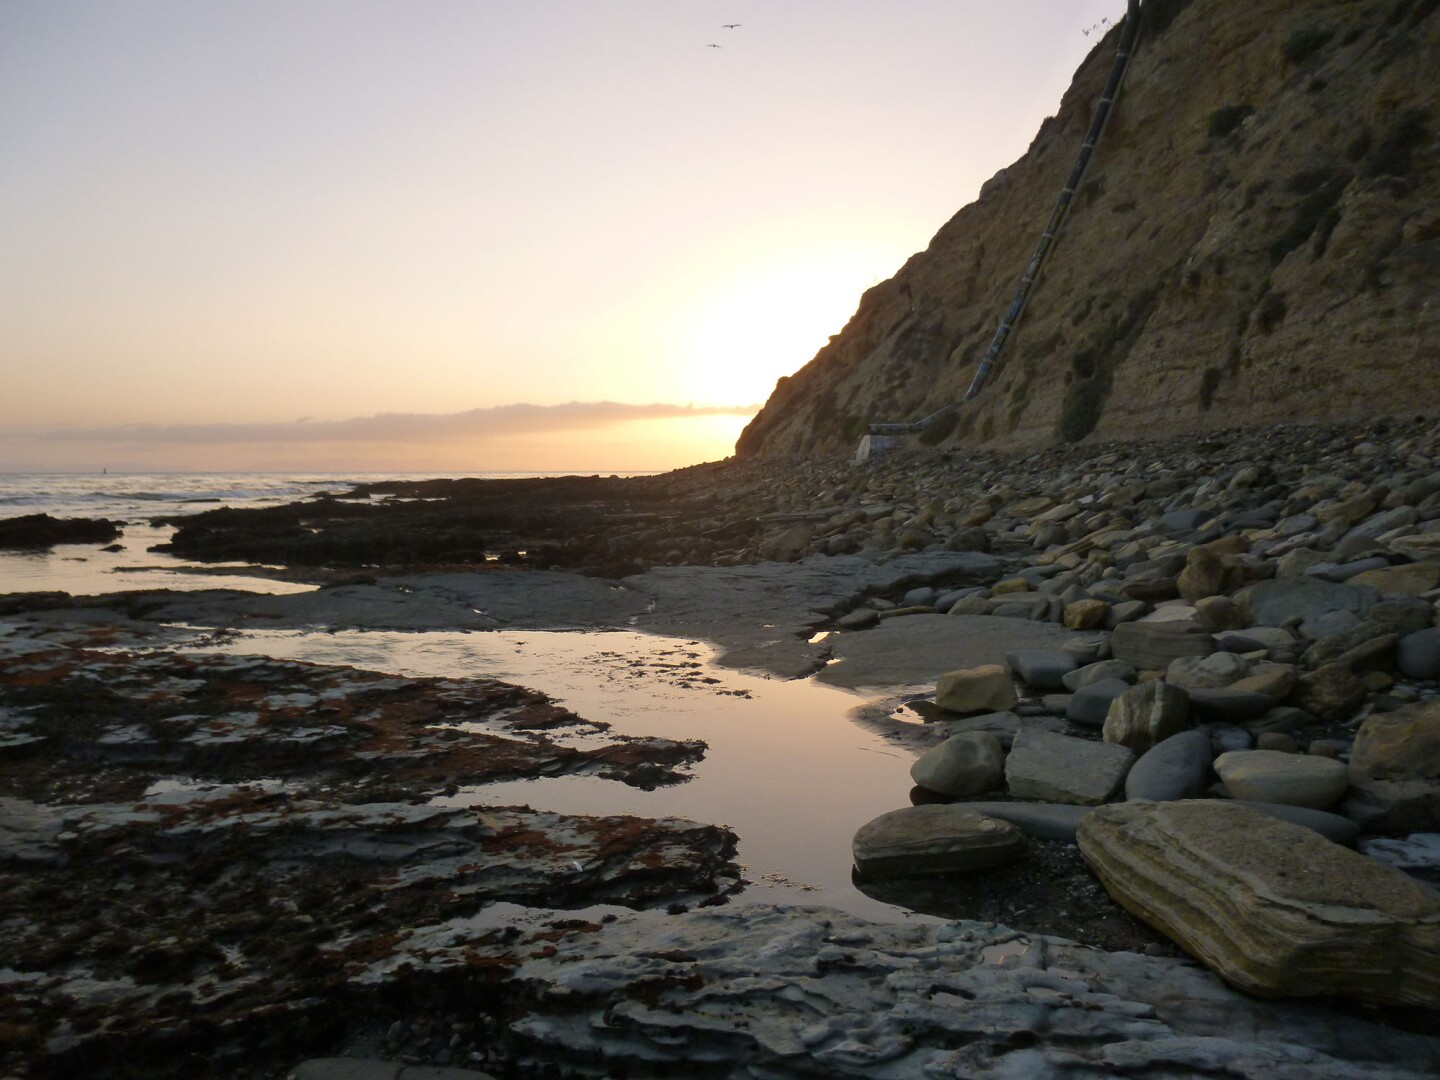 A sunset shines a warm glow on an almost dry shore of Cabrillo Beach in San Pedro.